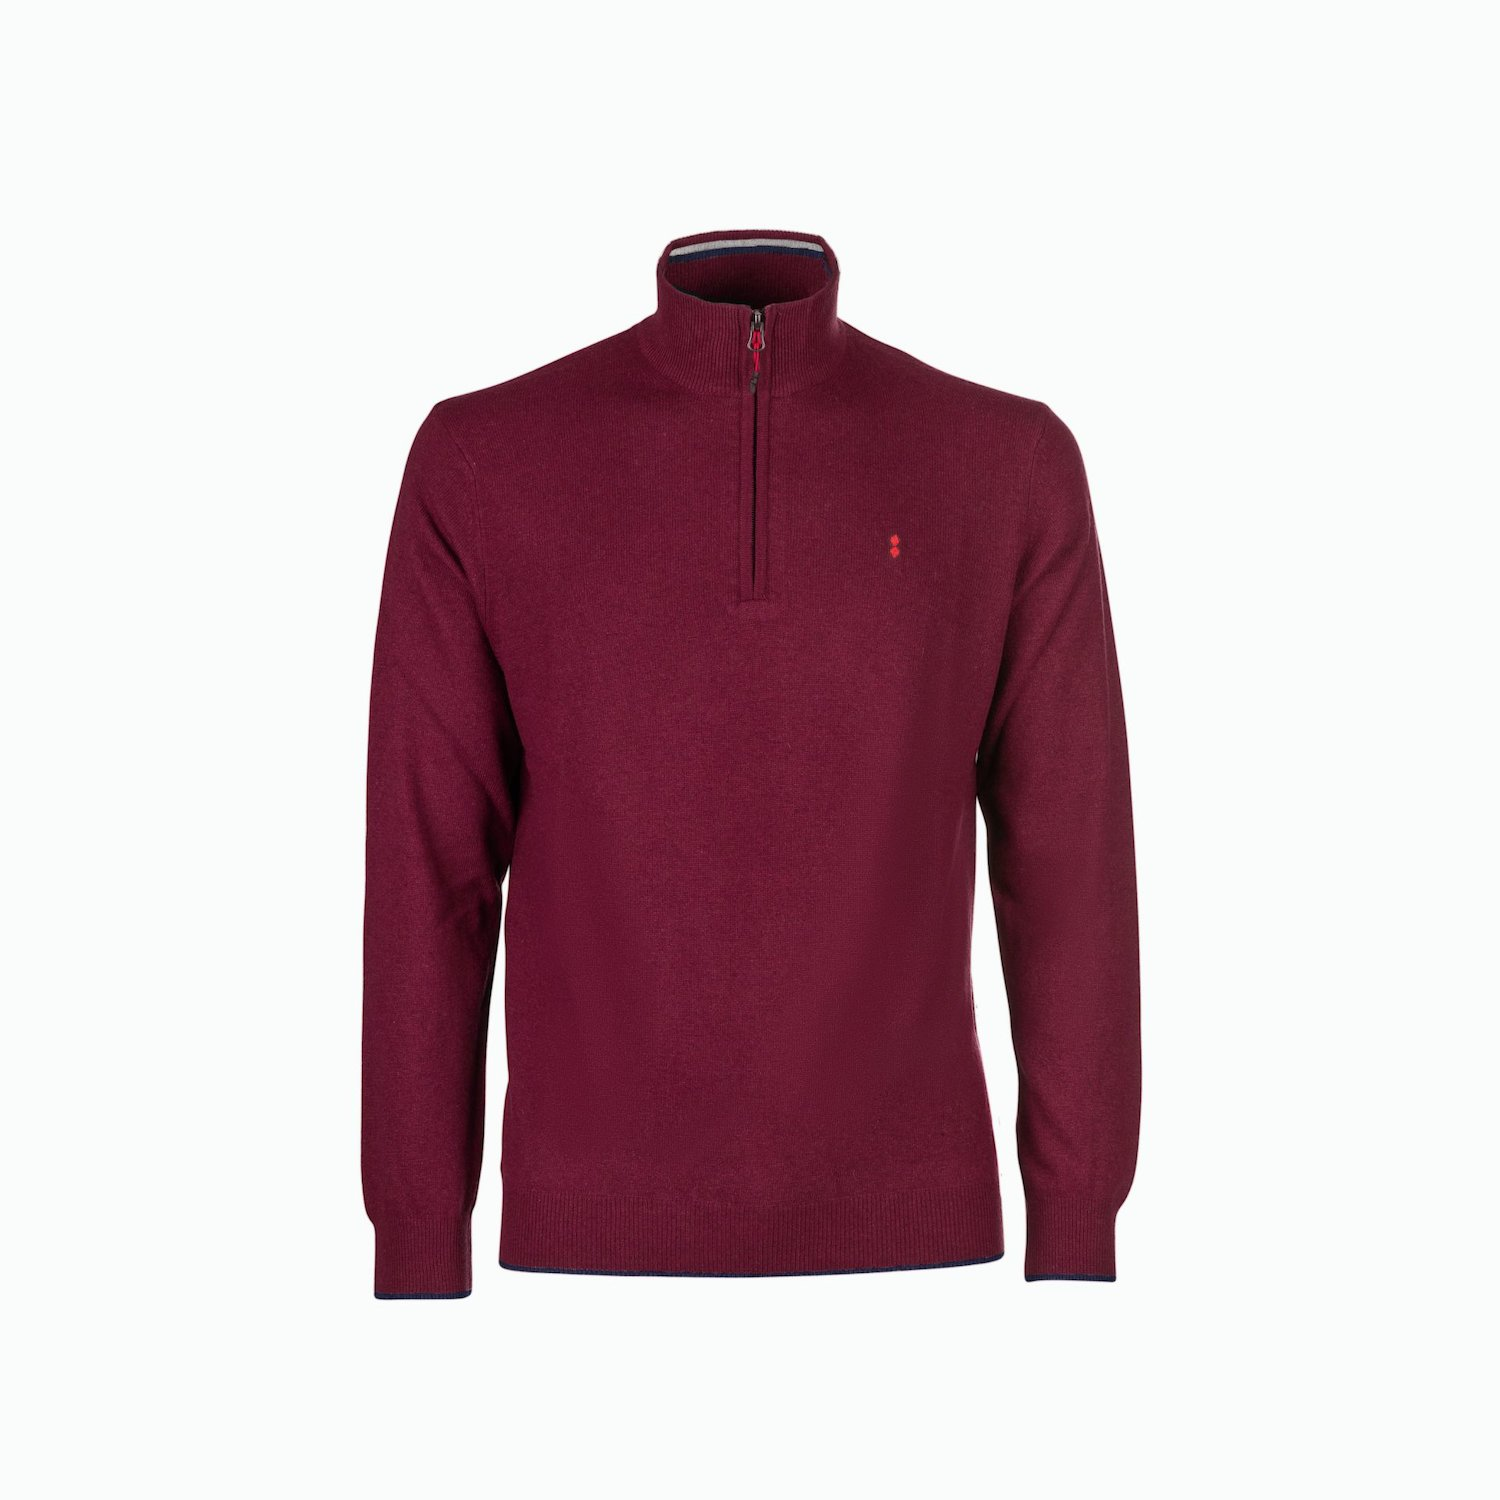 B133 Jumper - Biking Red